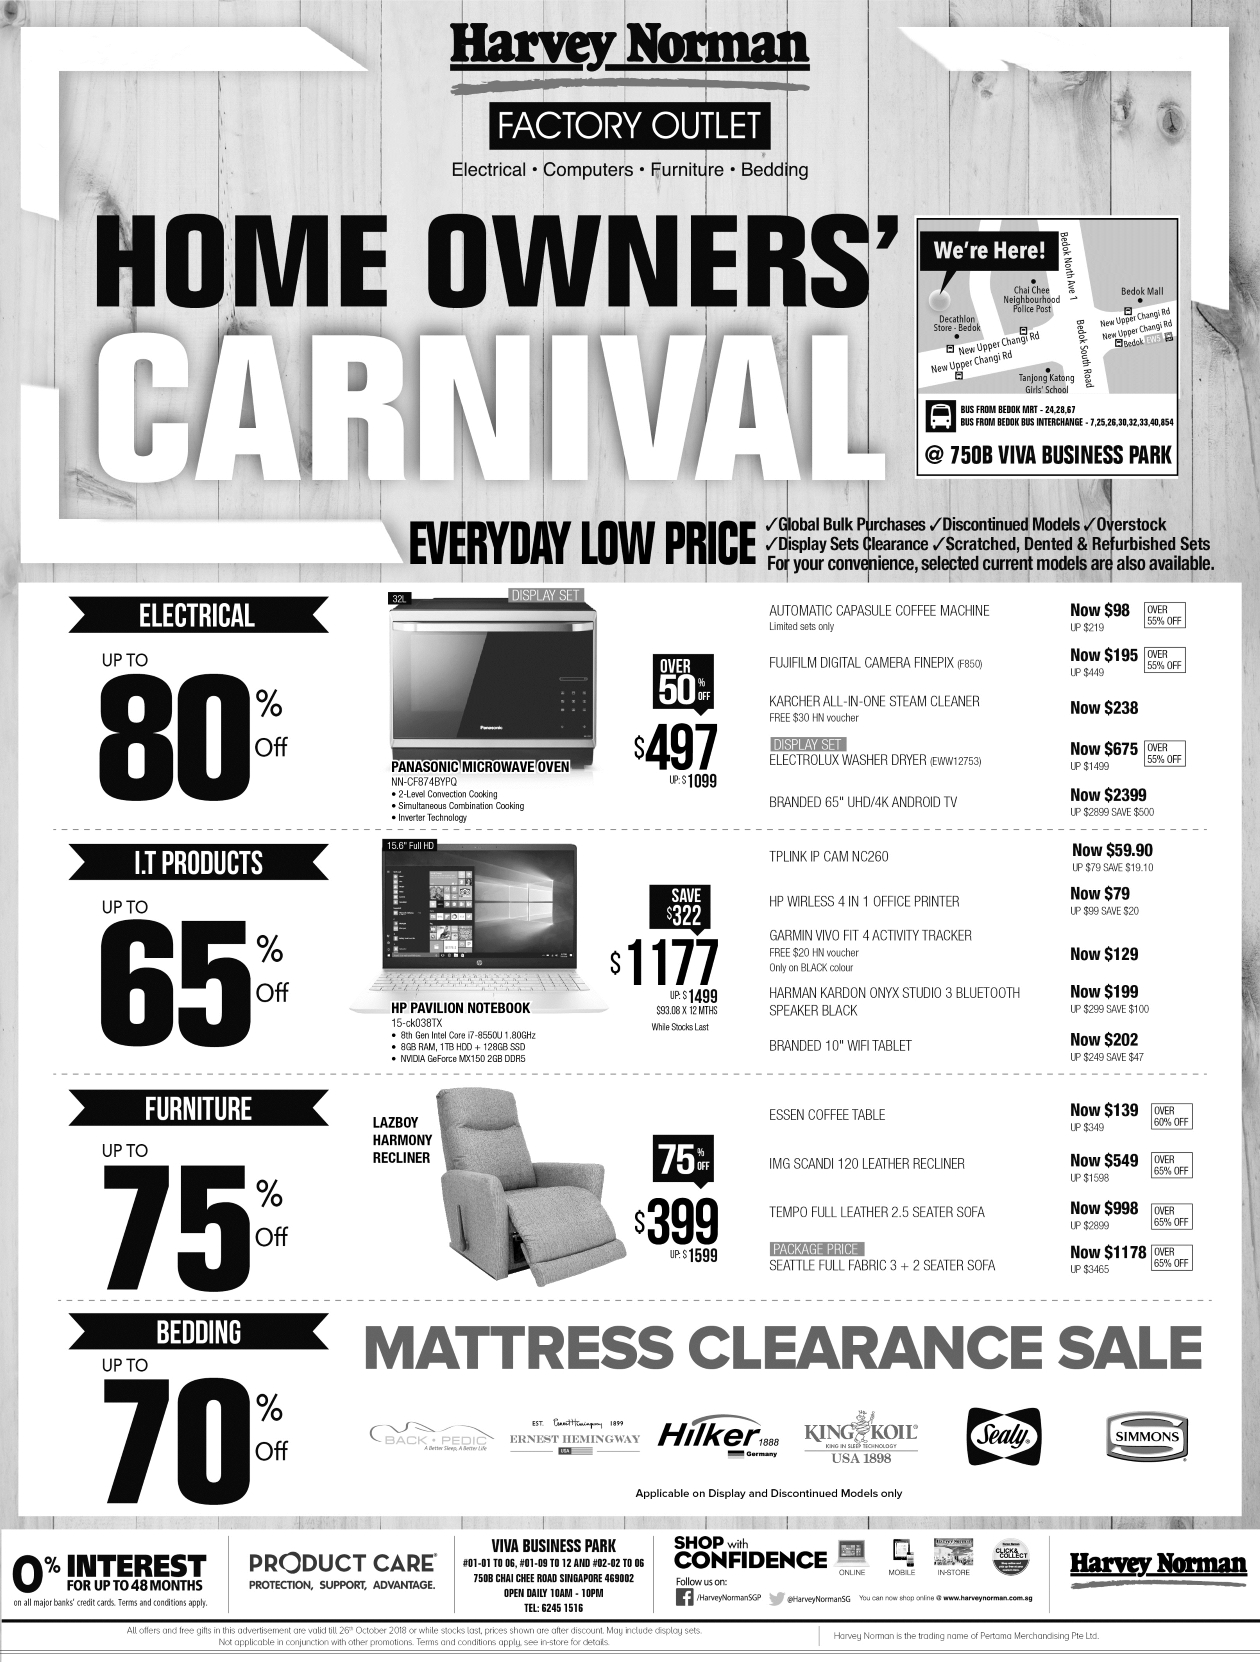 home owners carnival at harvey norman factory outlet